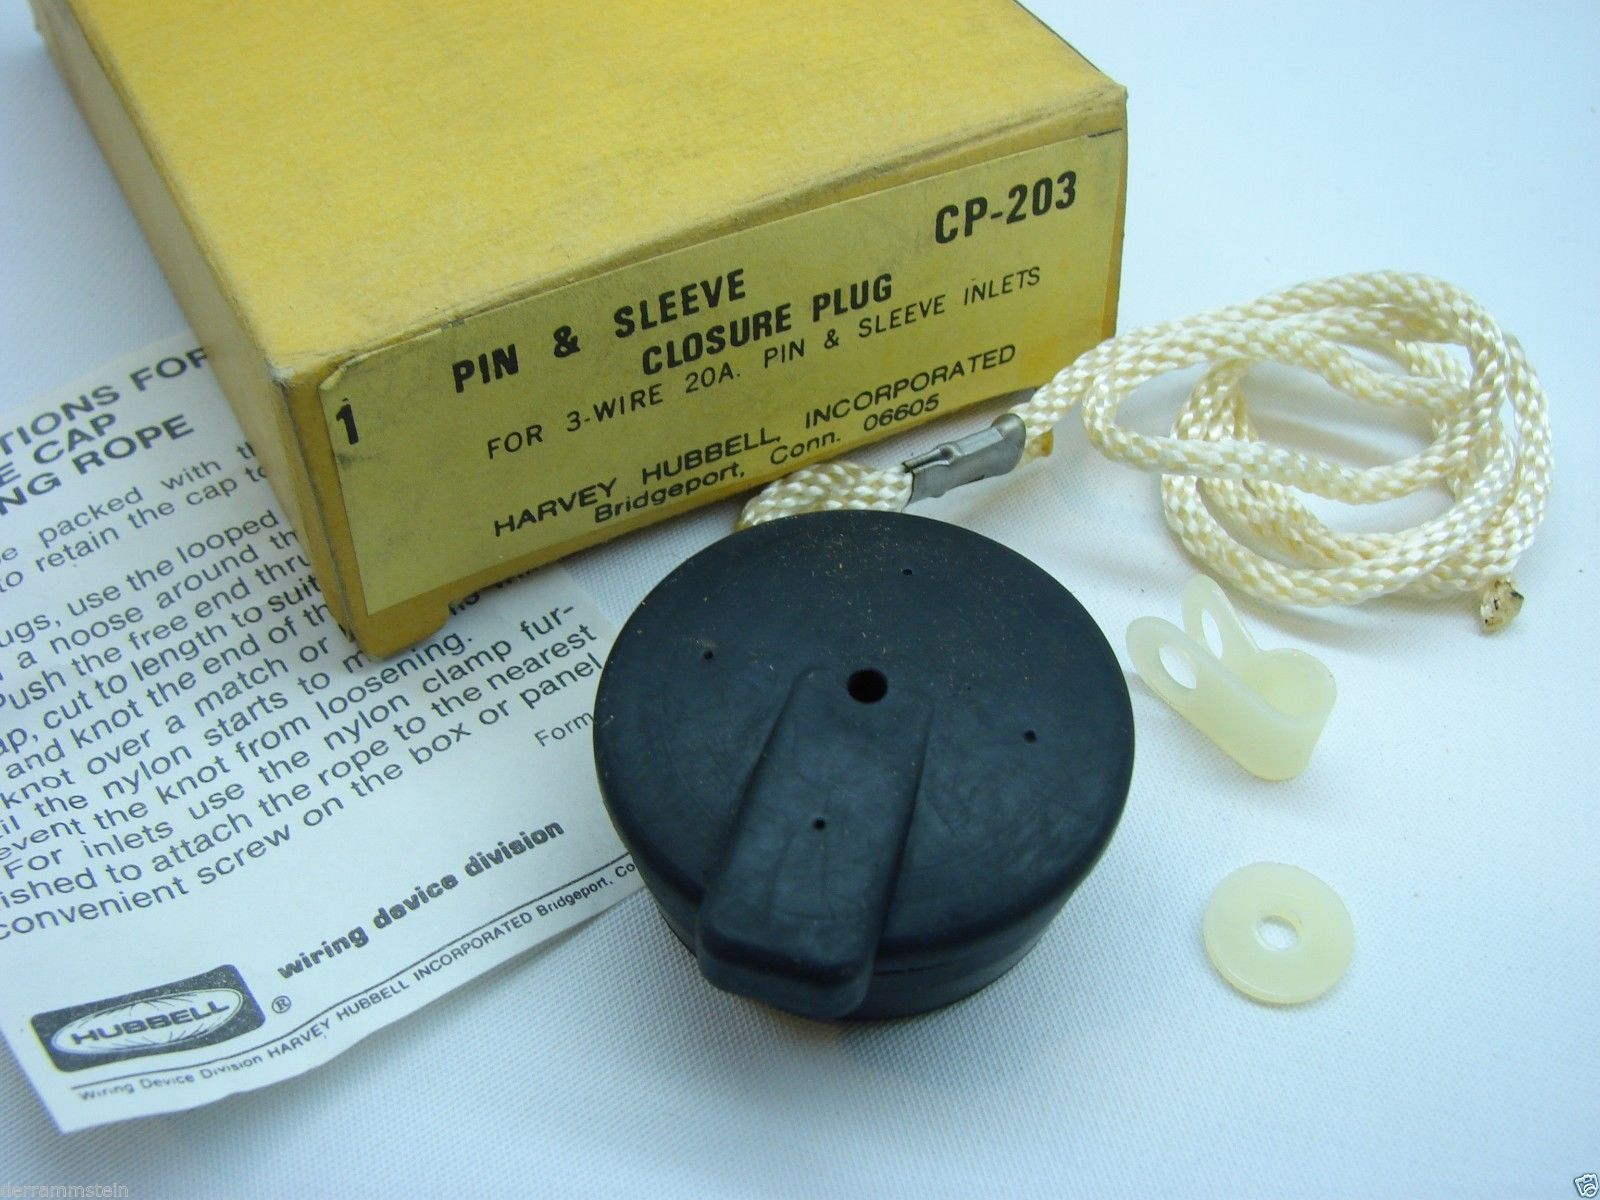 Hubbell CP-203 Pin & Sleeve Closure Plug For 3 Wire 20 Amp Pin & Sleeve Inlet t7